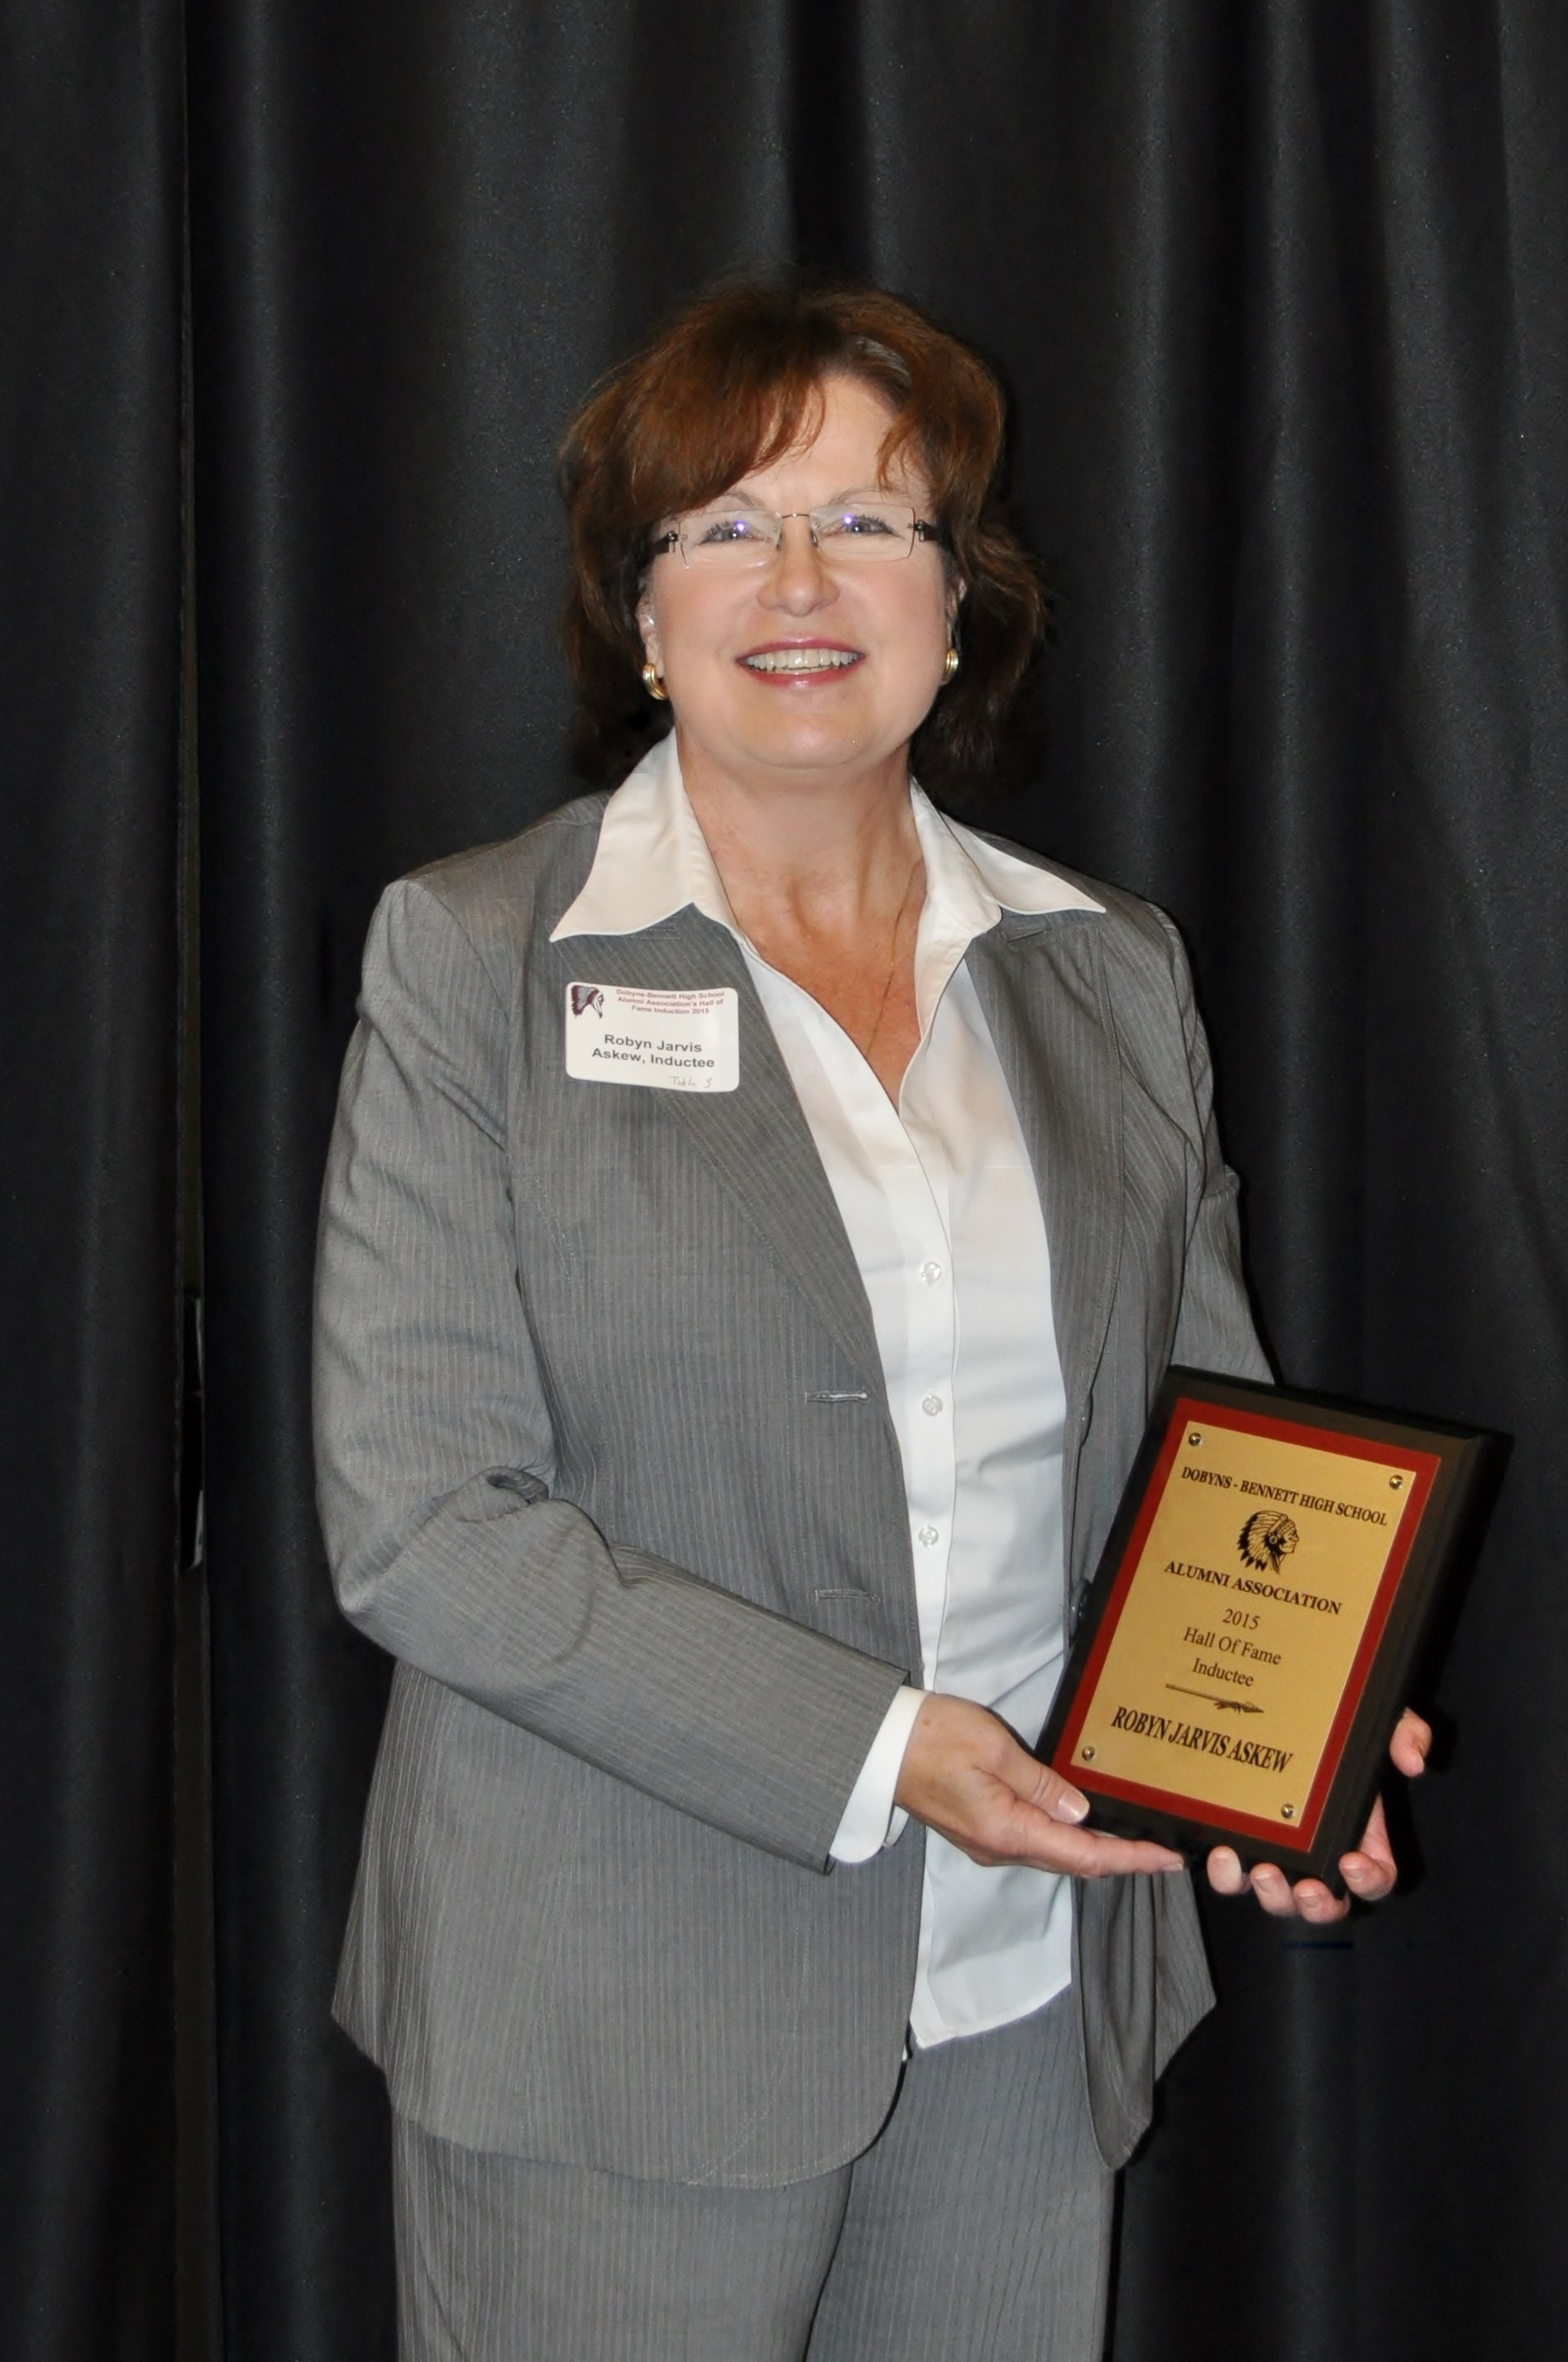 7th Annual Dobyns-Bennett Alumni Hall of Fame Inductee: Robin Jarvis Askew – Class of 1974